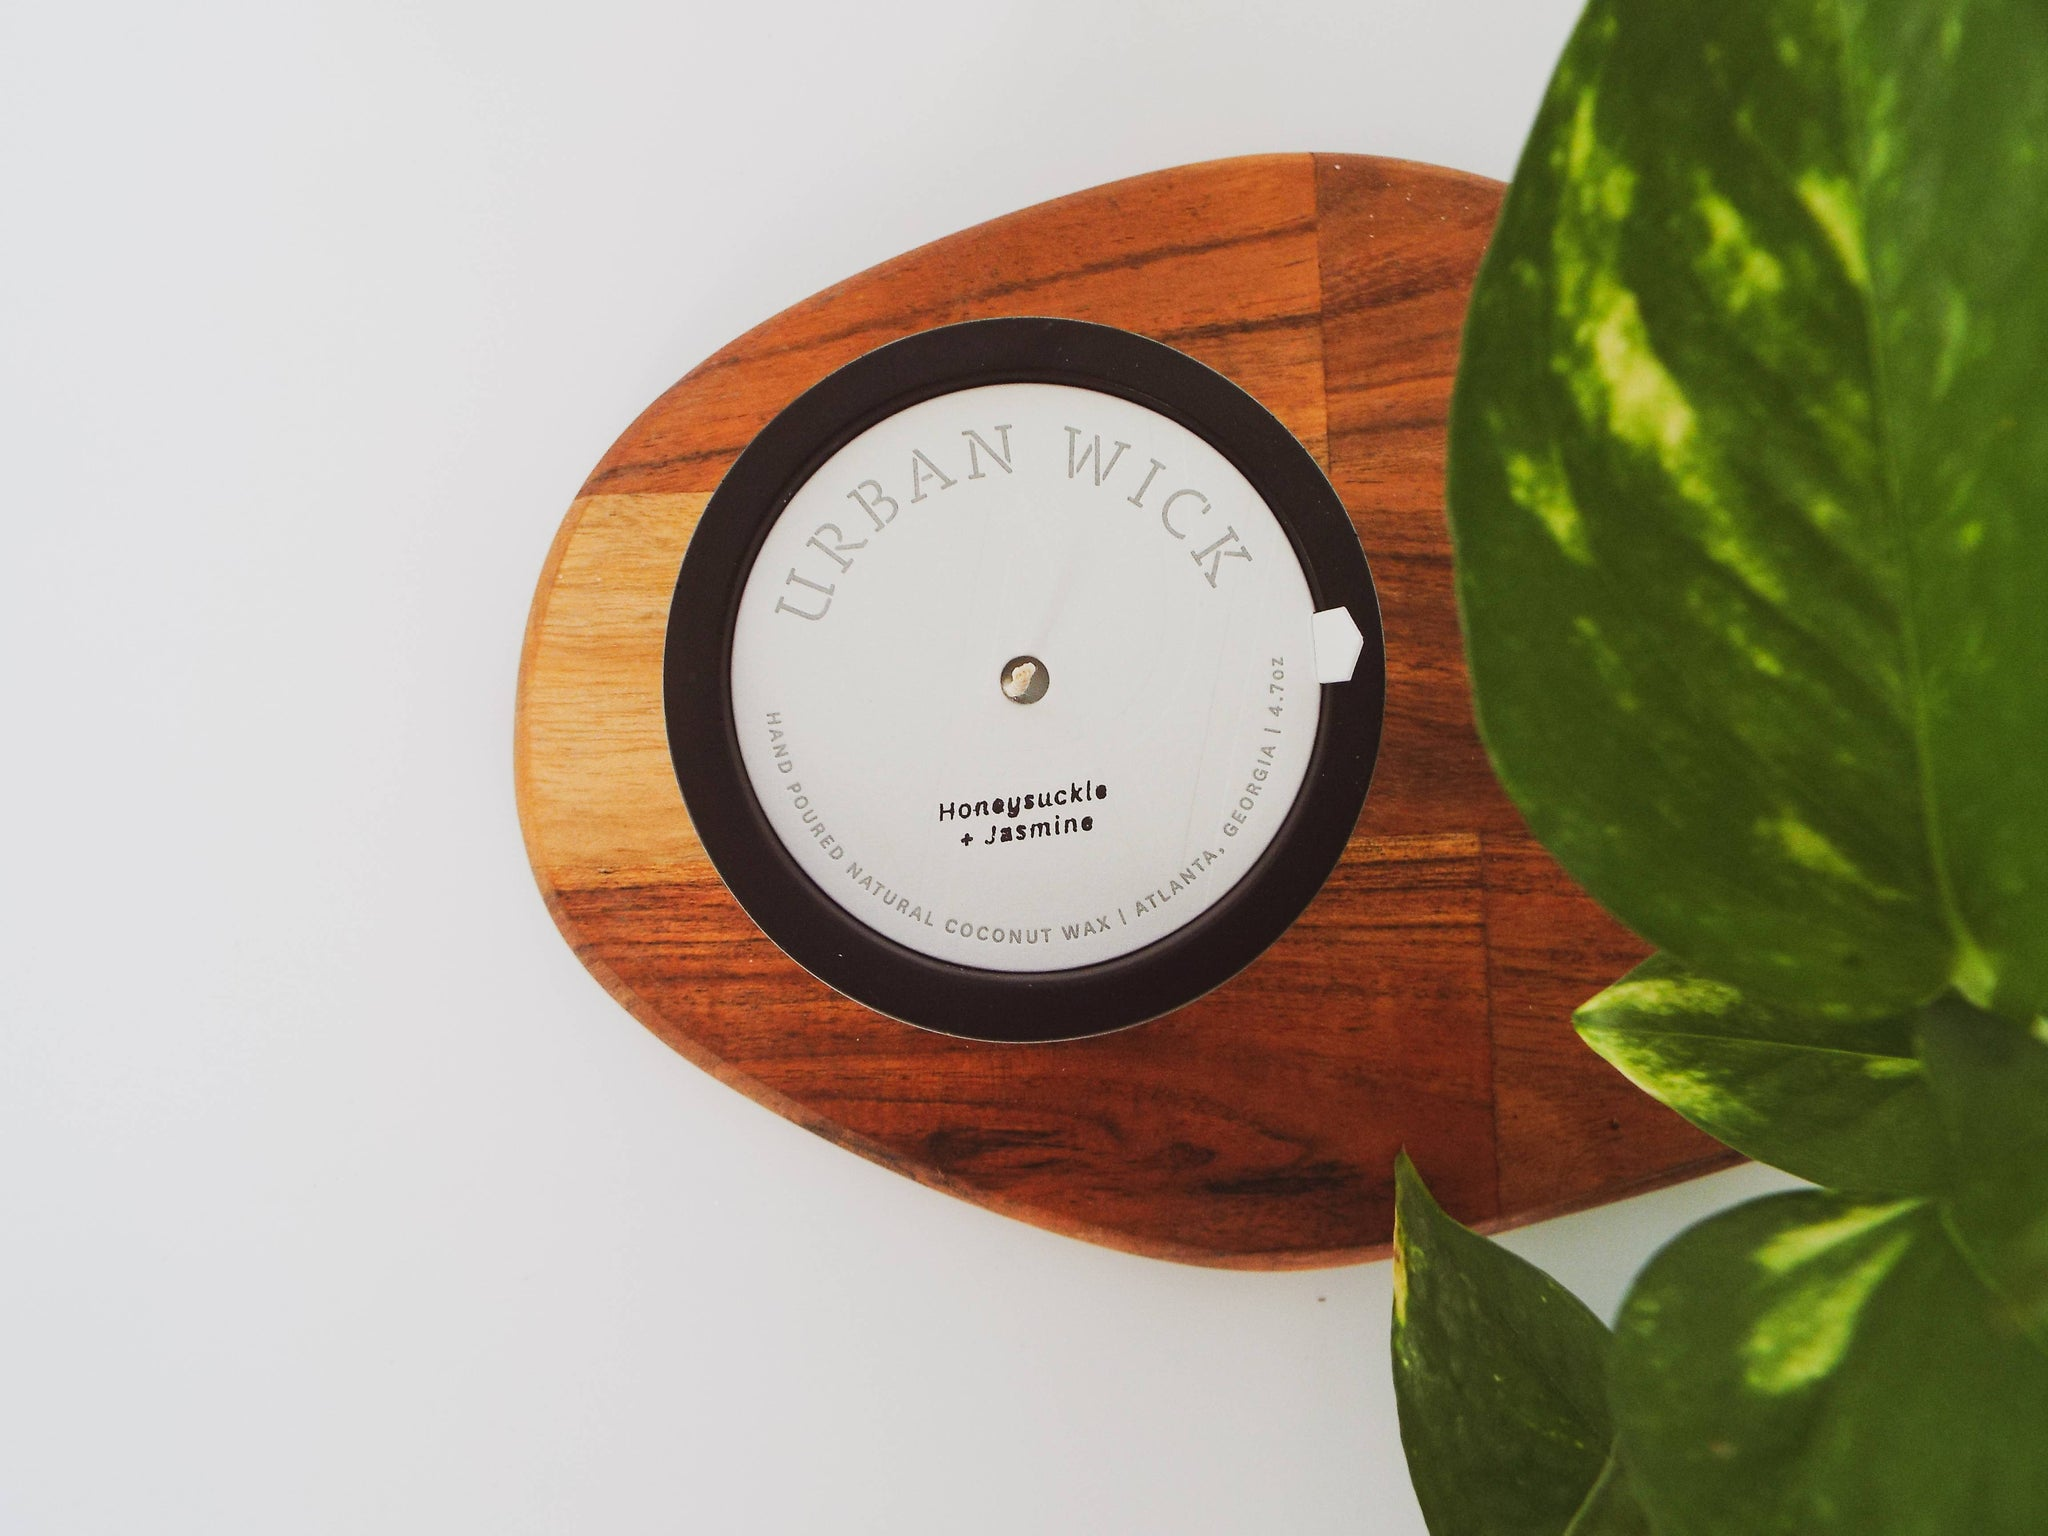 Honeysuckle and Jasmine Travel Candle by Urban Wick by Cait + Co